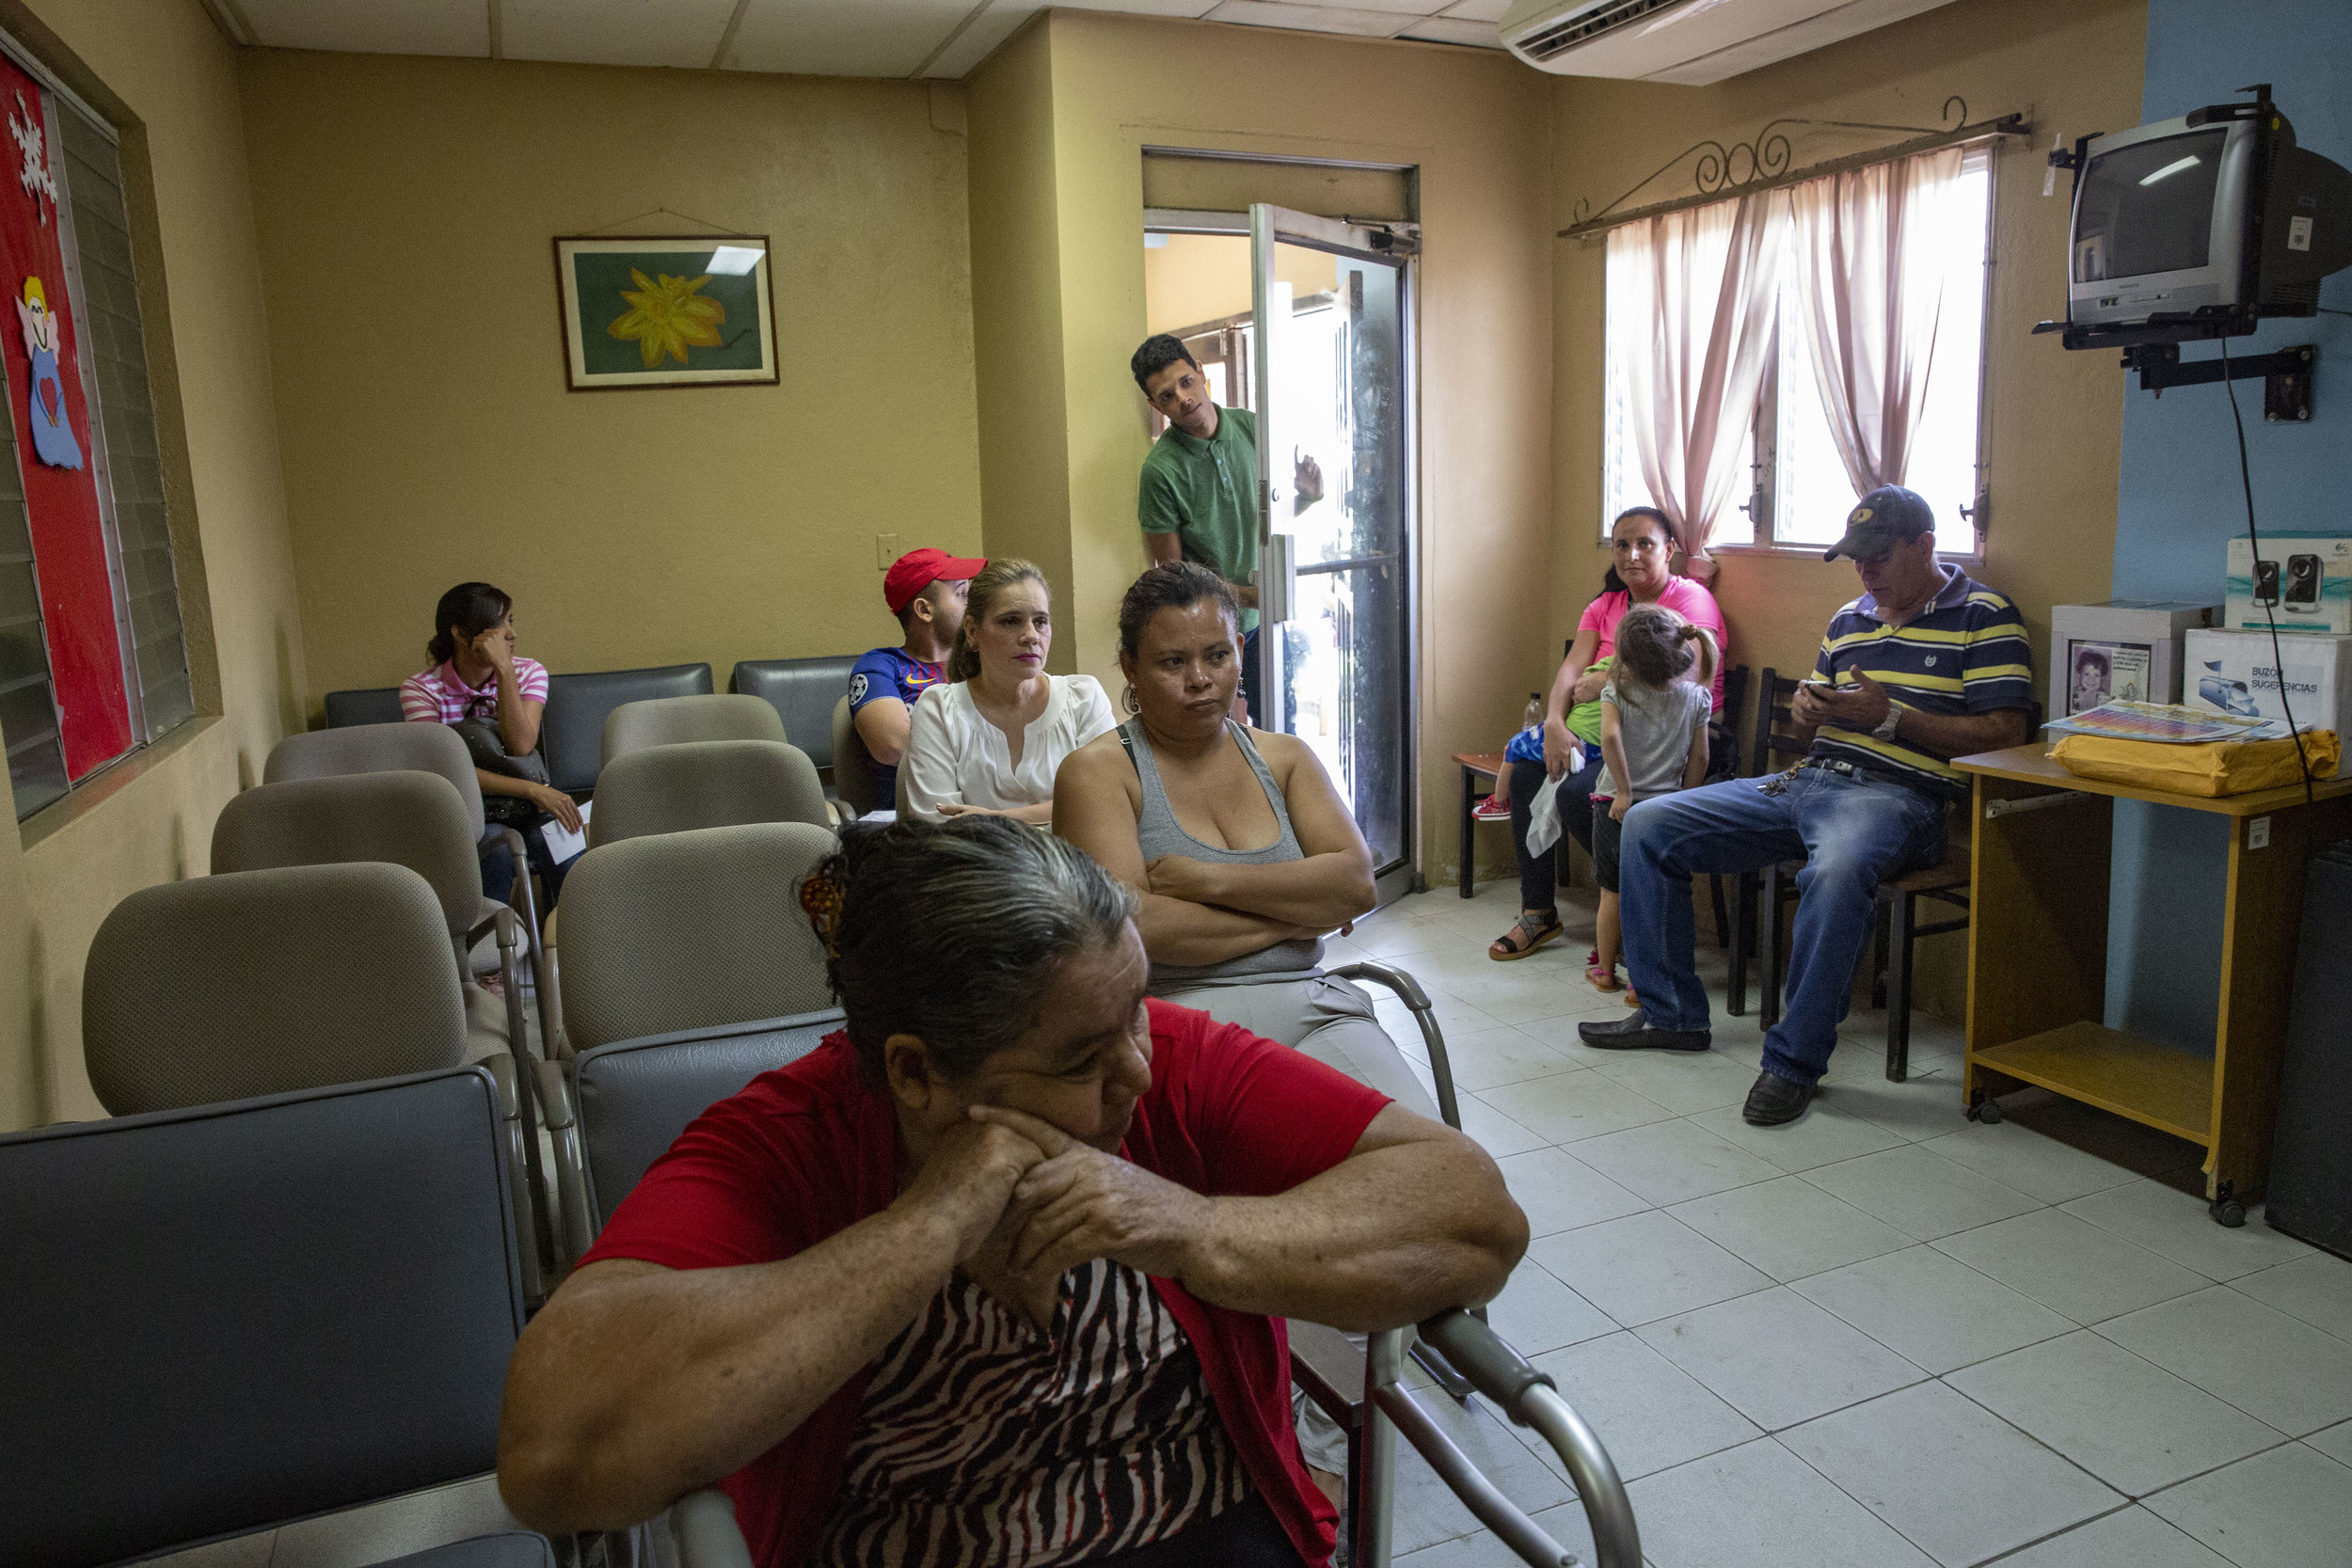 People wait to get the medicines and see the doctors in general medicine, dentistry, and orthodontics at the Ruth Paz clinic in Bogràn, a pretty dangerous neighborohood in San Pedro Sula, Honduras.